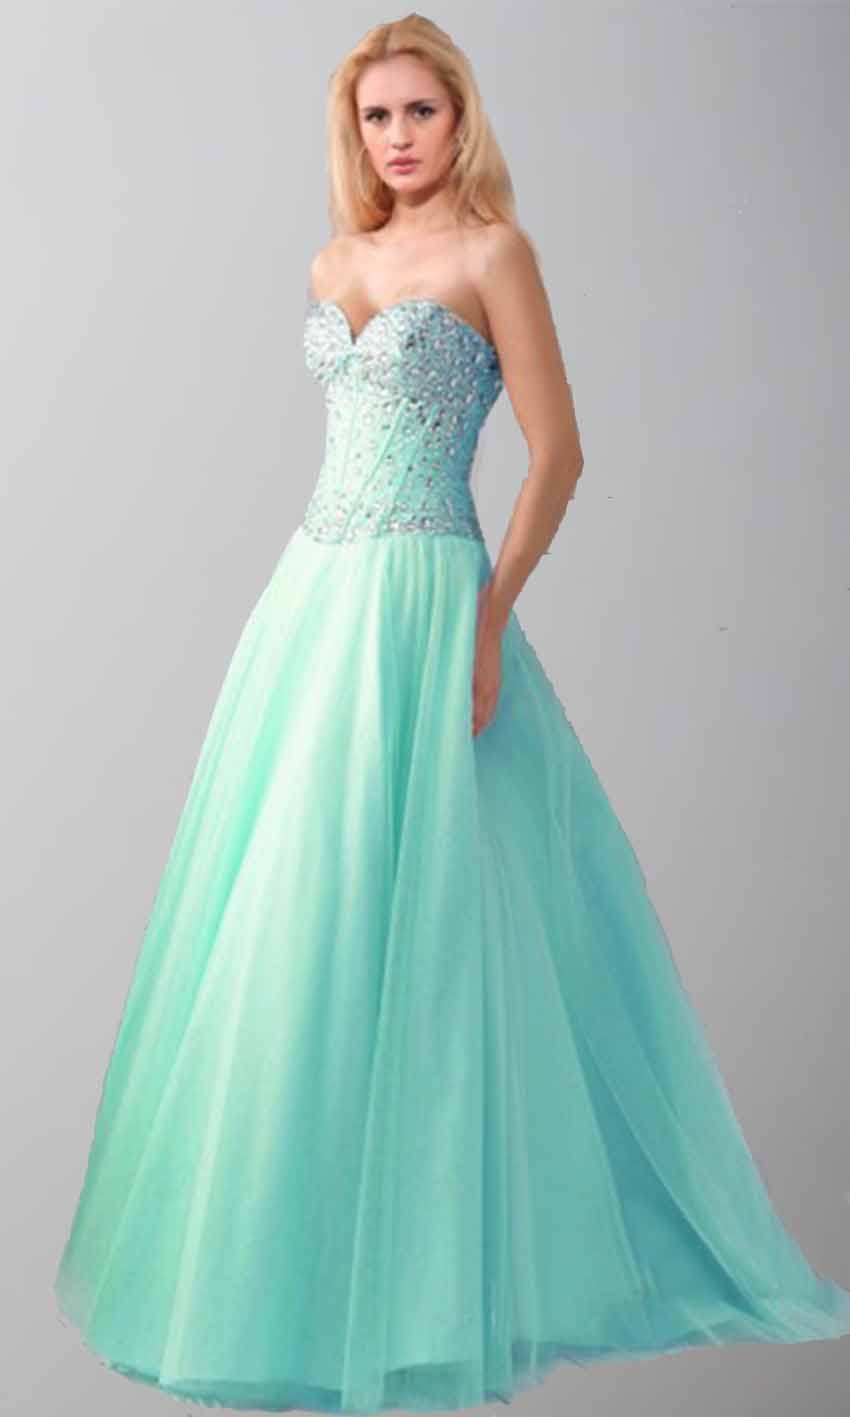 Fancy Prom Dress Hire Uk Ideas - All Wedding Dresses ...